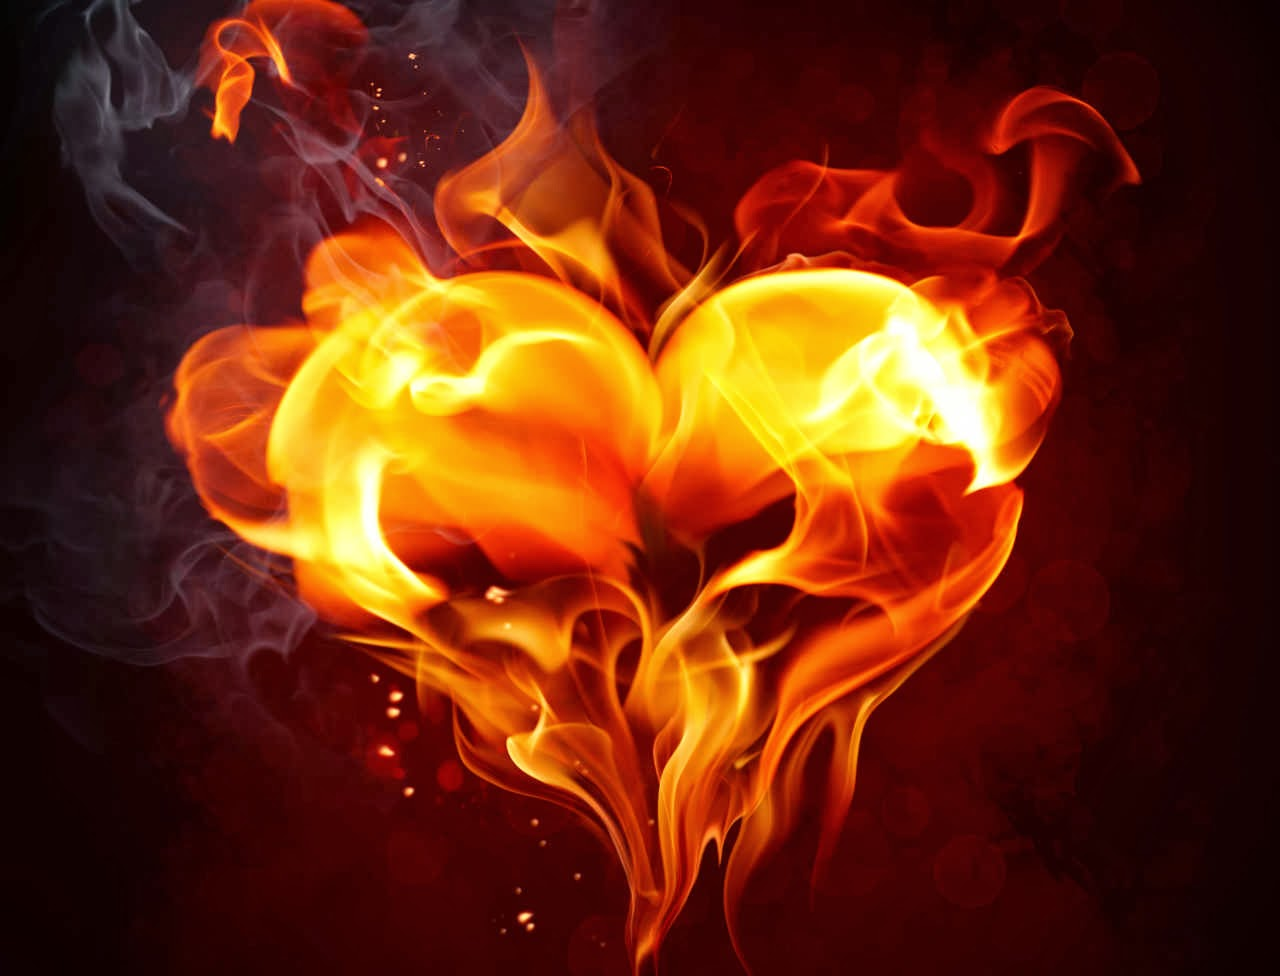 Fire Passion, Image Credit Thinkstock.jpg